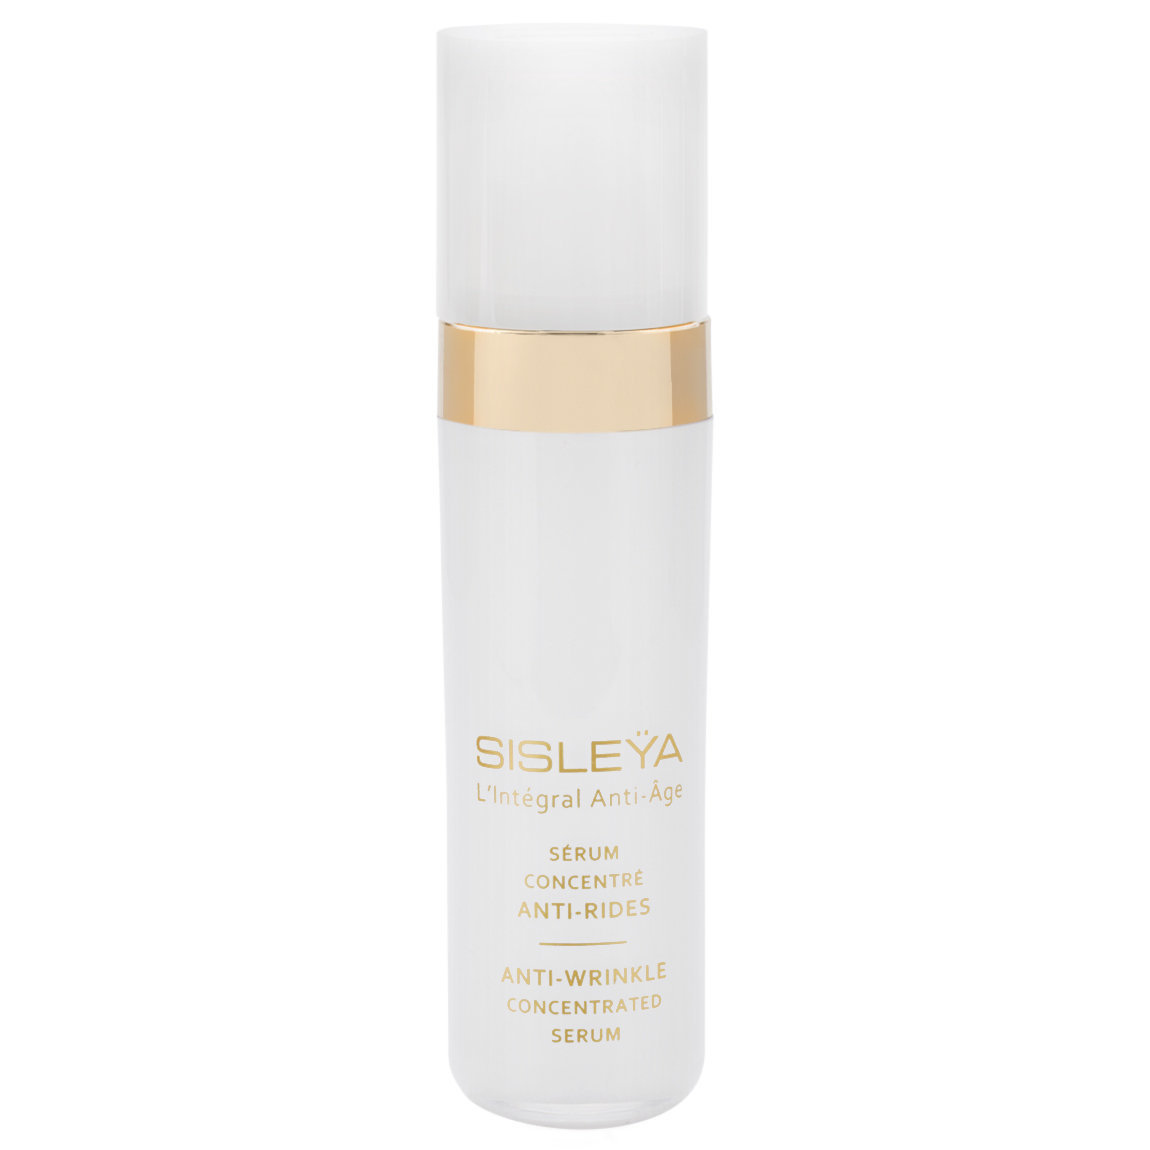 Sisley-Paris Sisleÿa L'Integral Anti-Age Anti-Wrinkle Concentrated Serum alternative view 1 - product swatch.